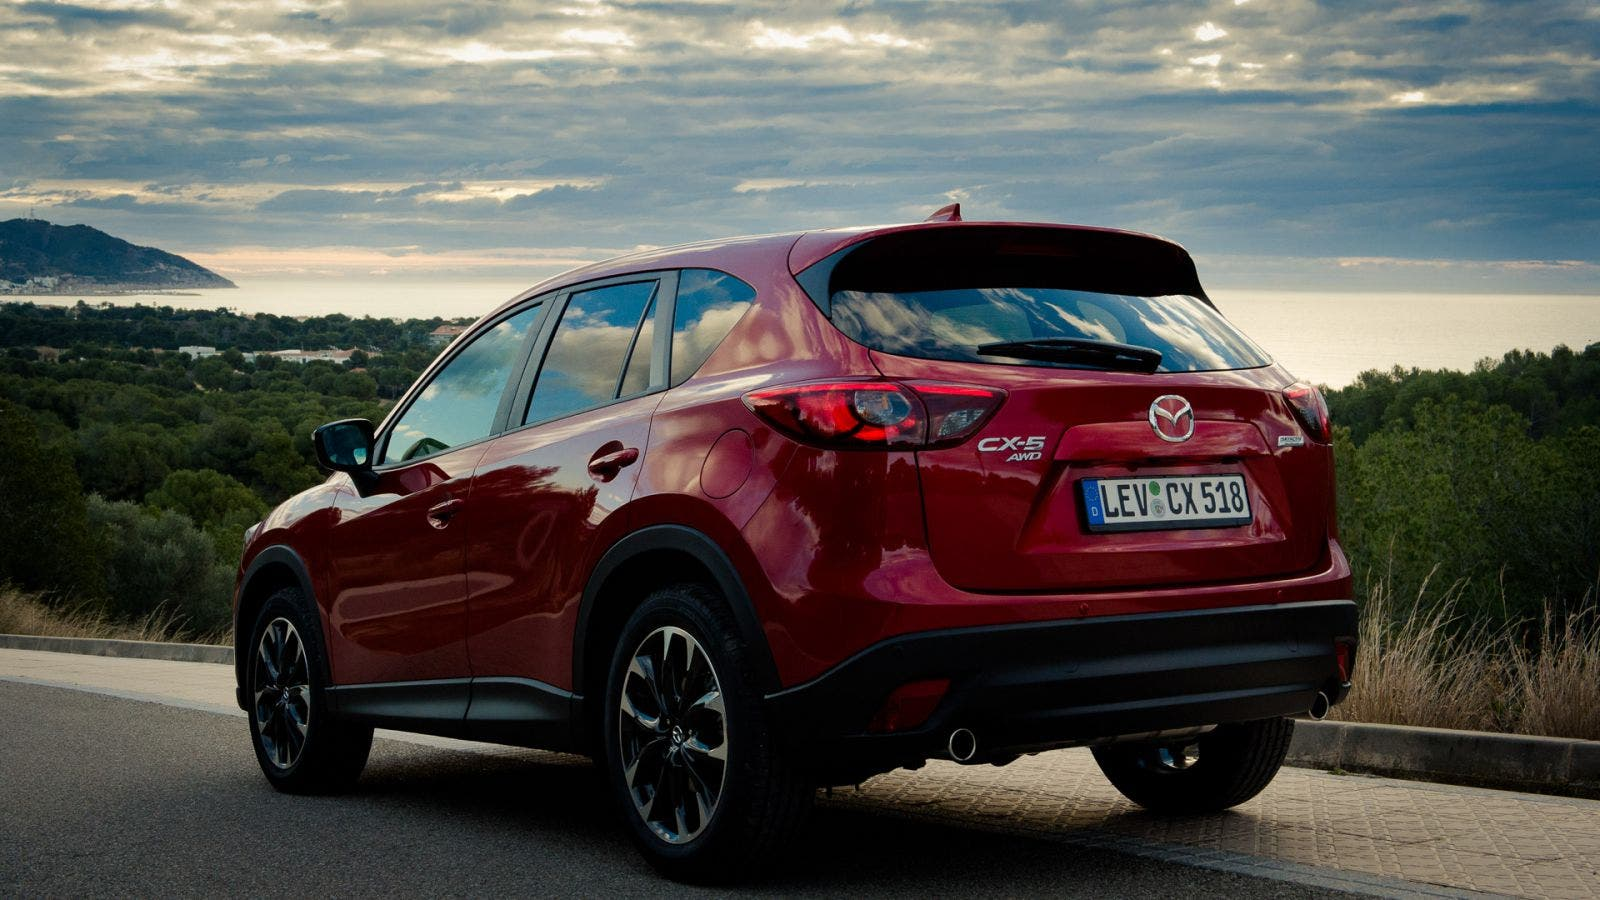 2015 mazda cx 5 skyactiv d 175 awd at fahrbericht. Black Bedroom Furniture Sets. Home Design Ideas